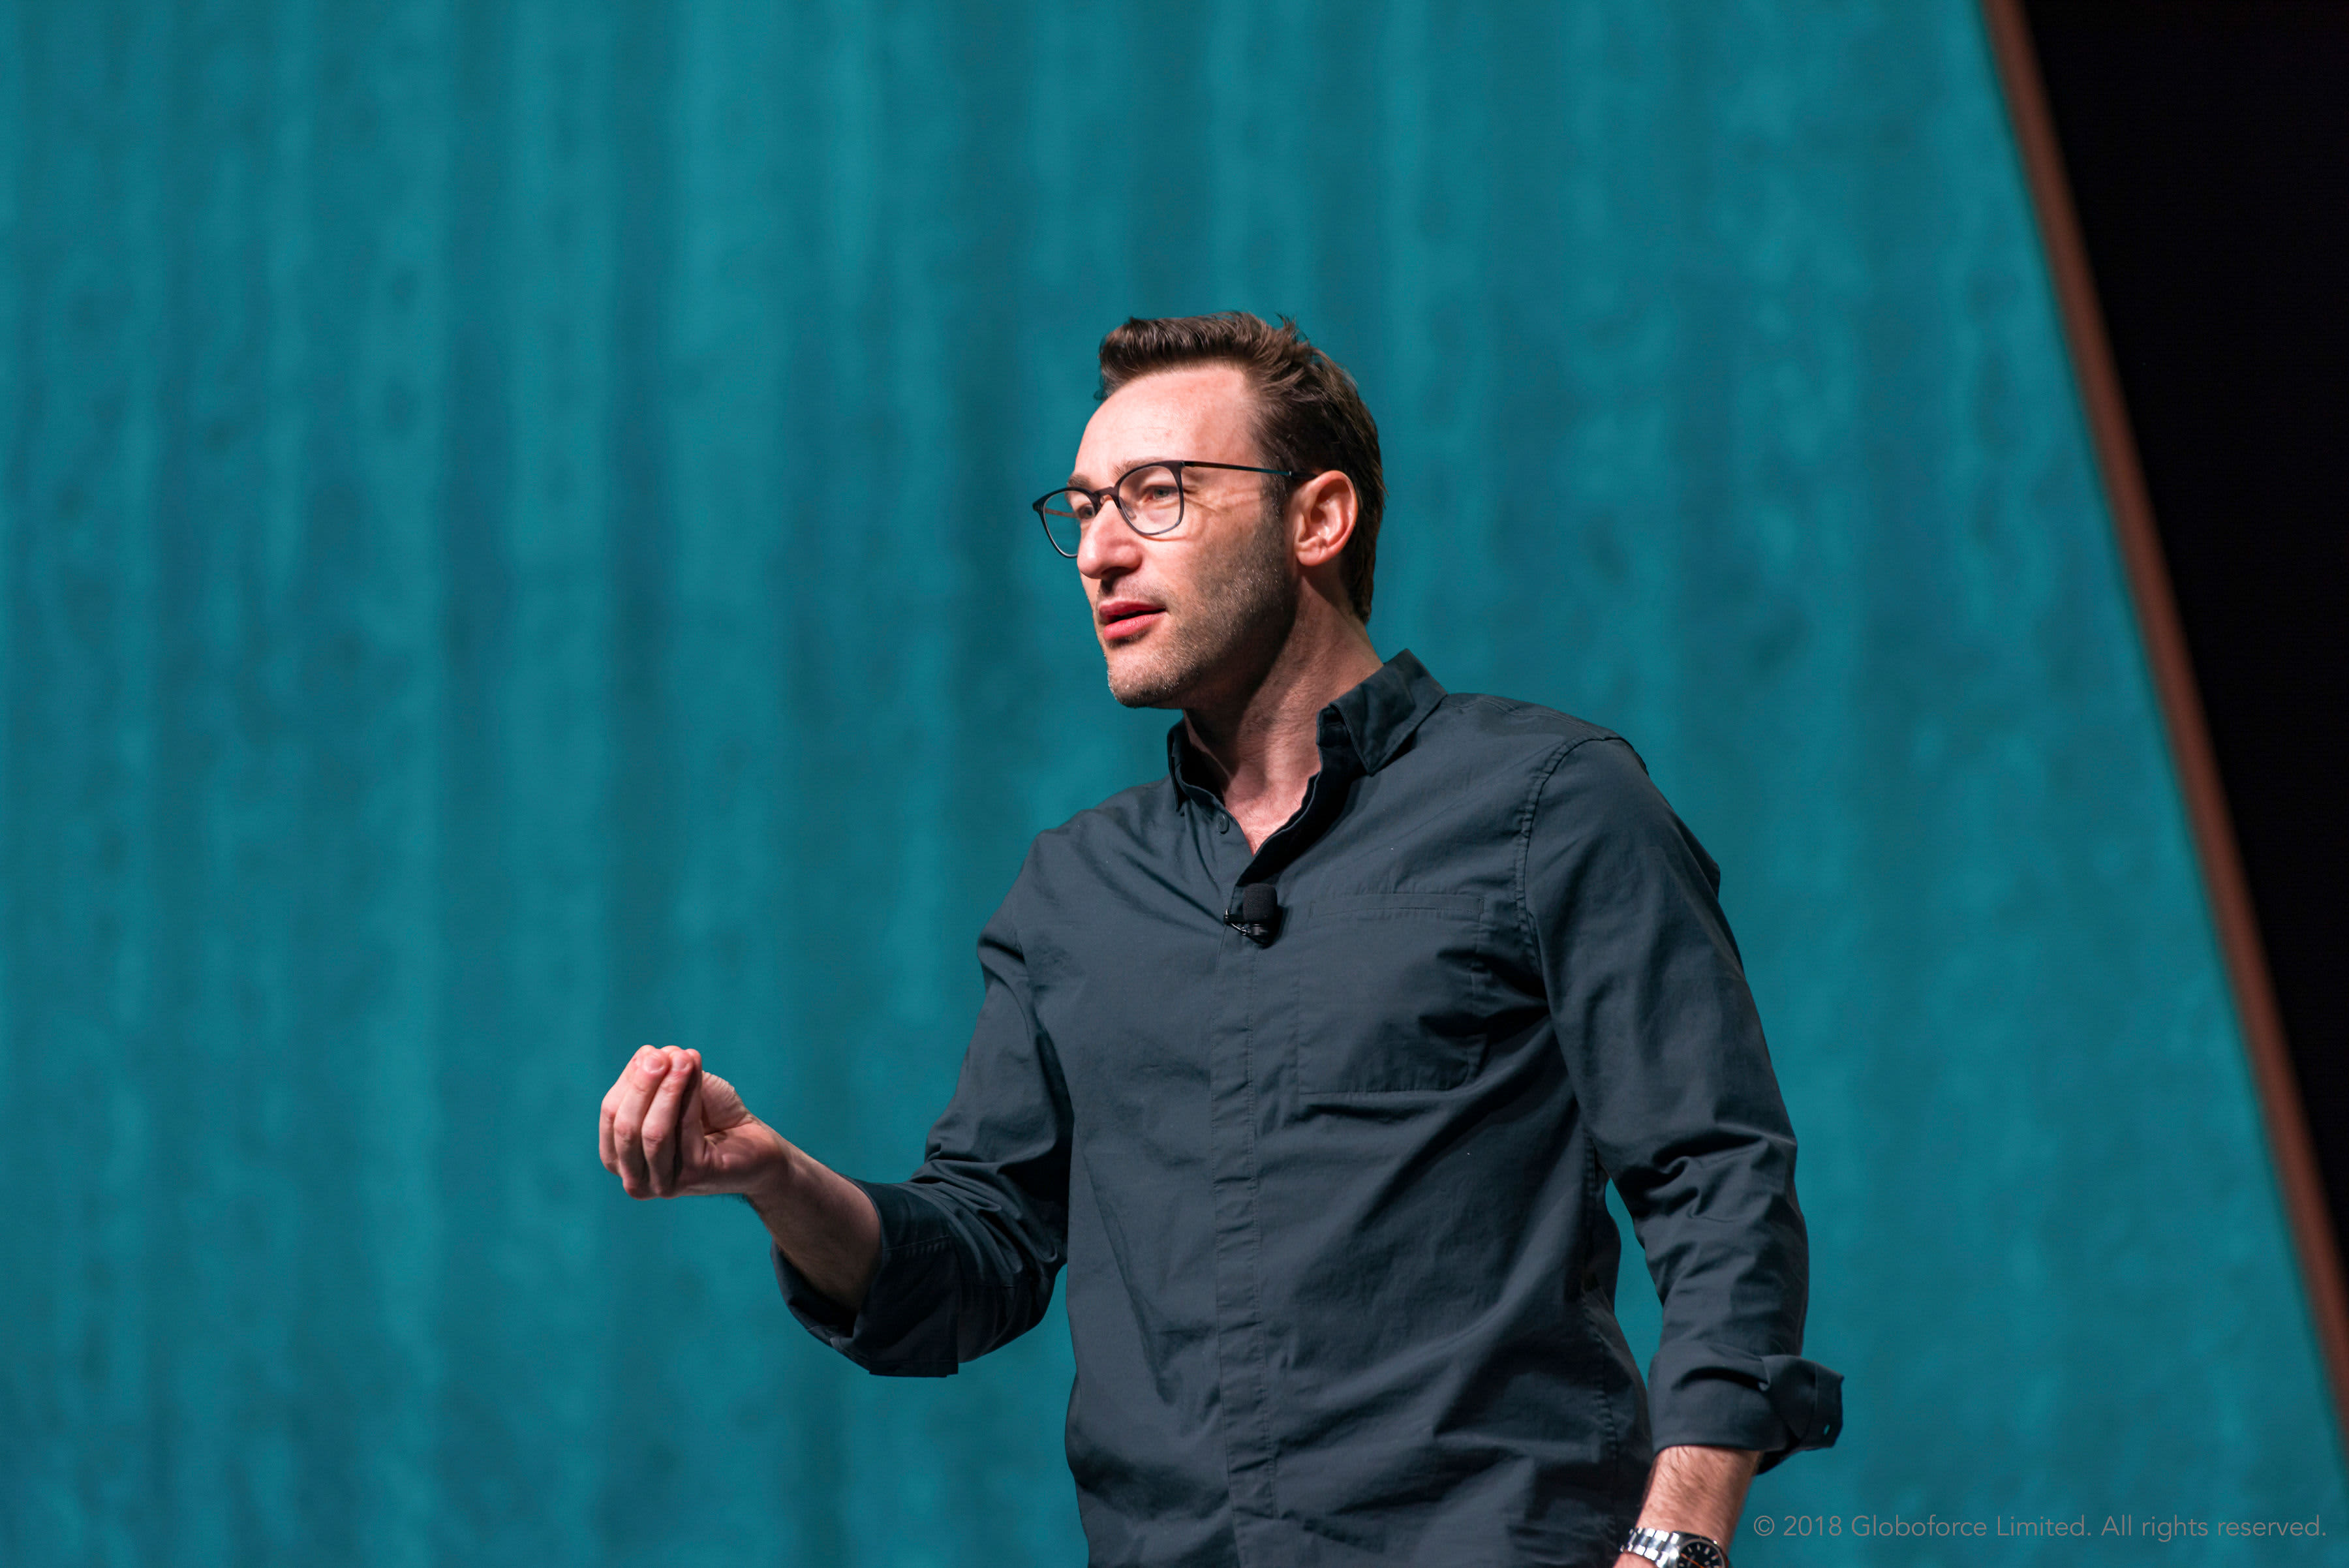 Simon Sinek: These 2 life-changing books will rewire your brain for success